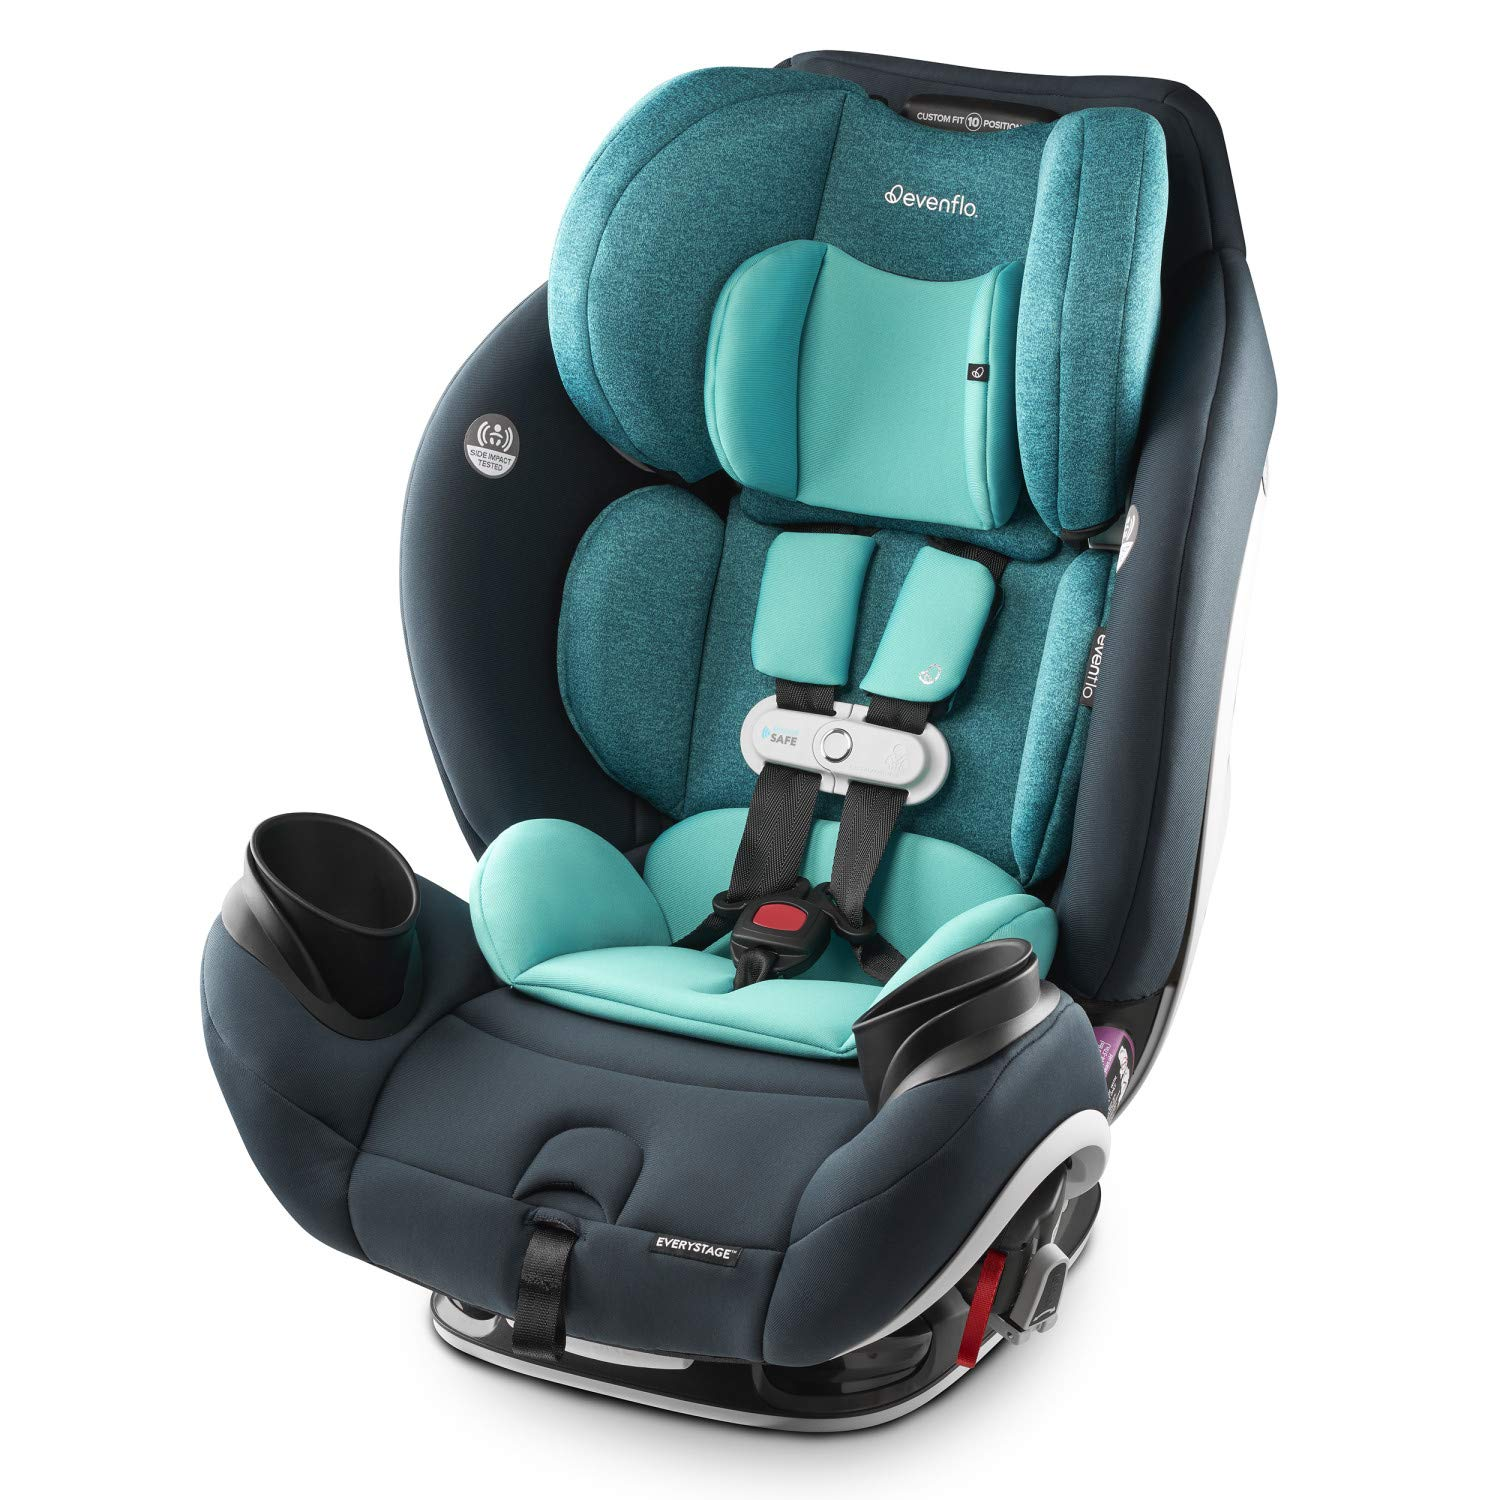 Evenflo Gold All-in-One Convertible Car Seat